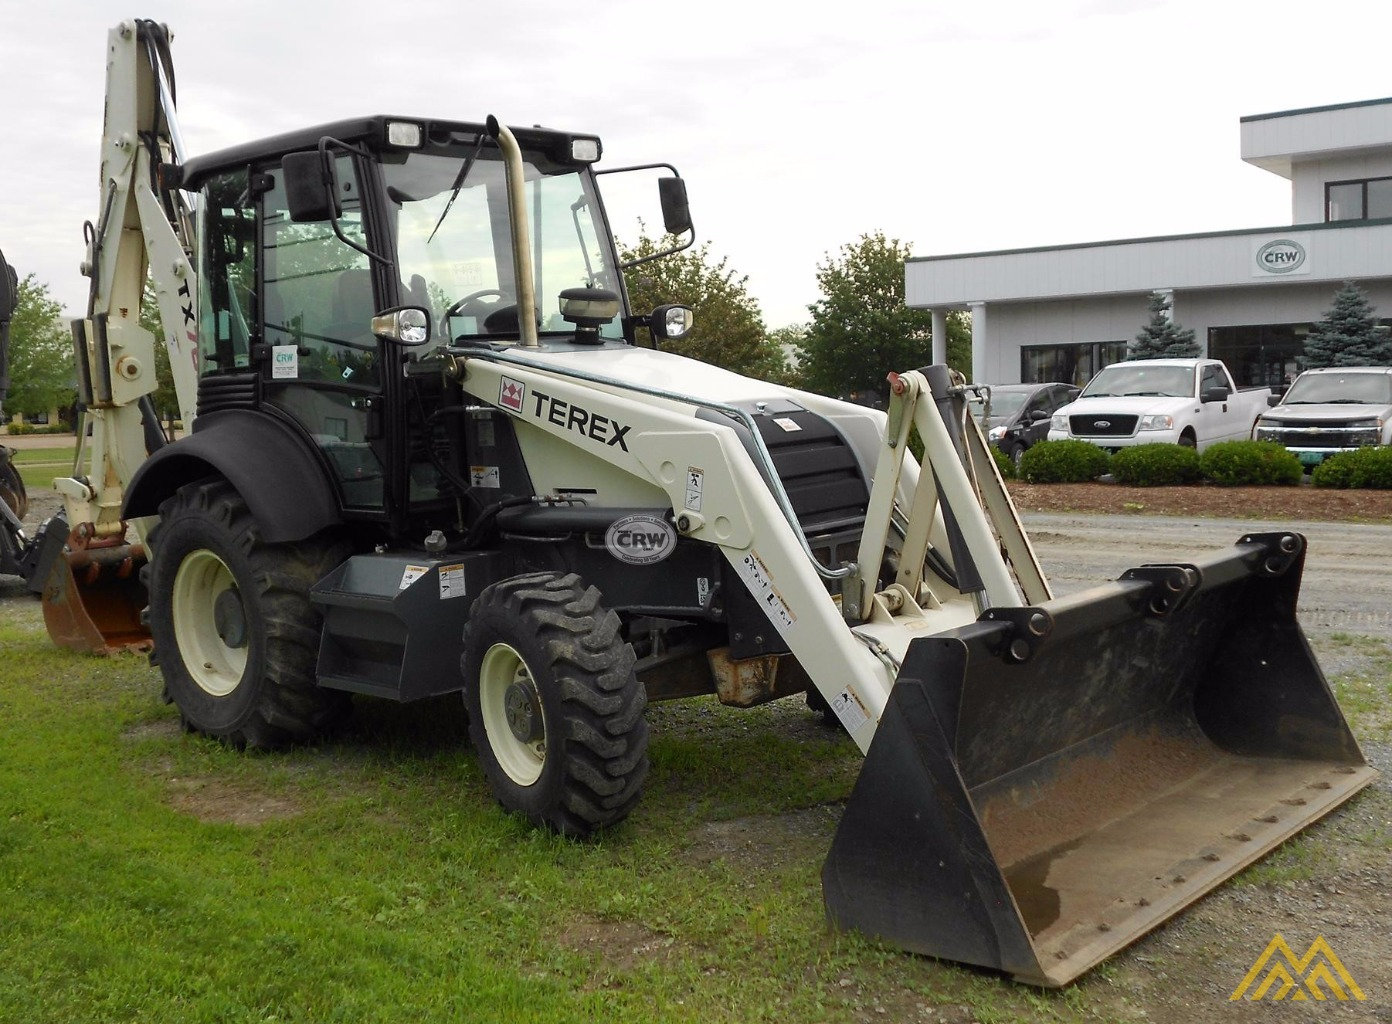 Low Hr!! 2010 Terex TX760B Backhoe Loader 1